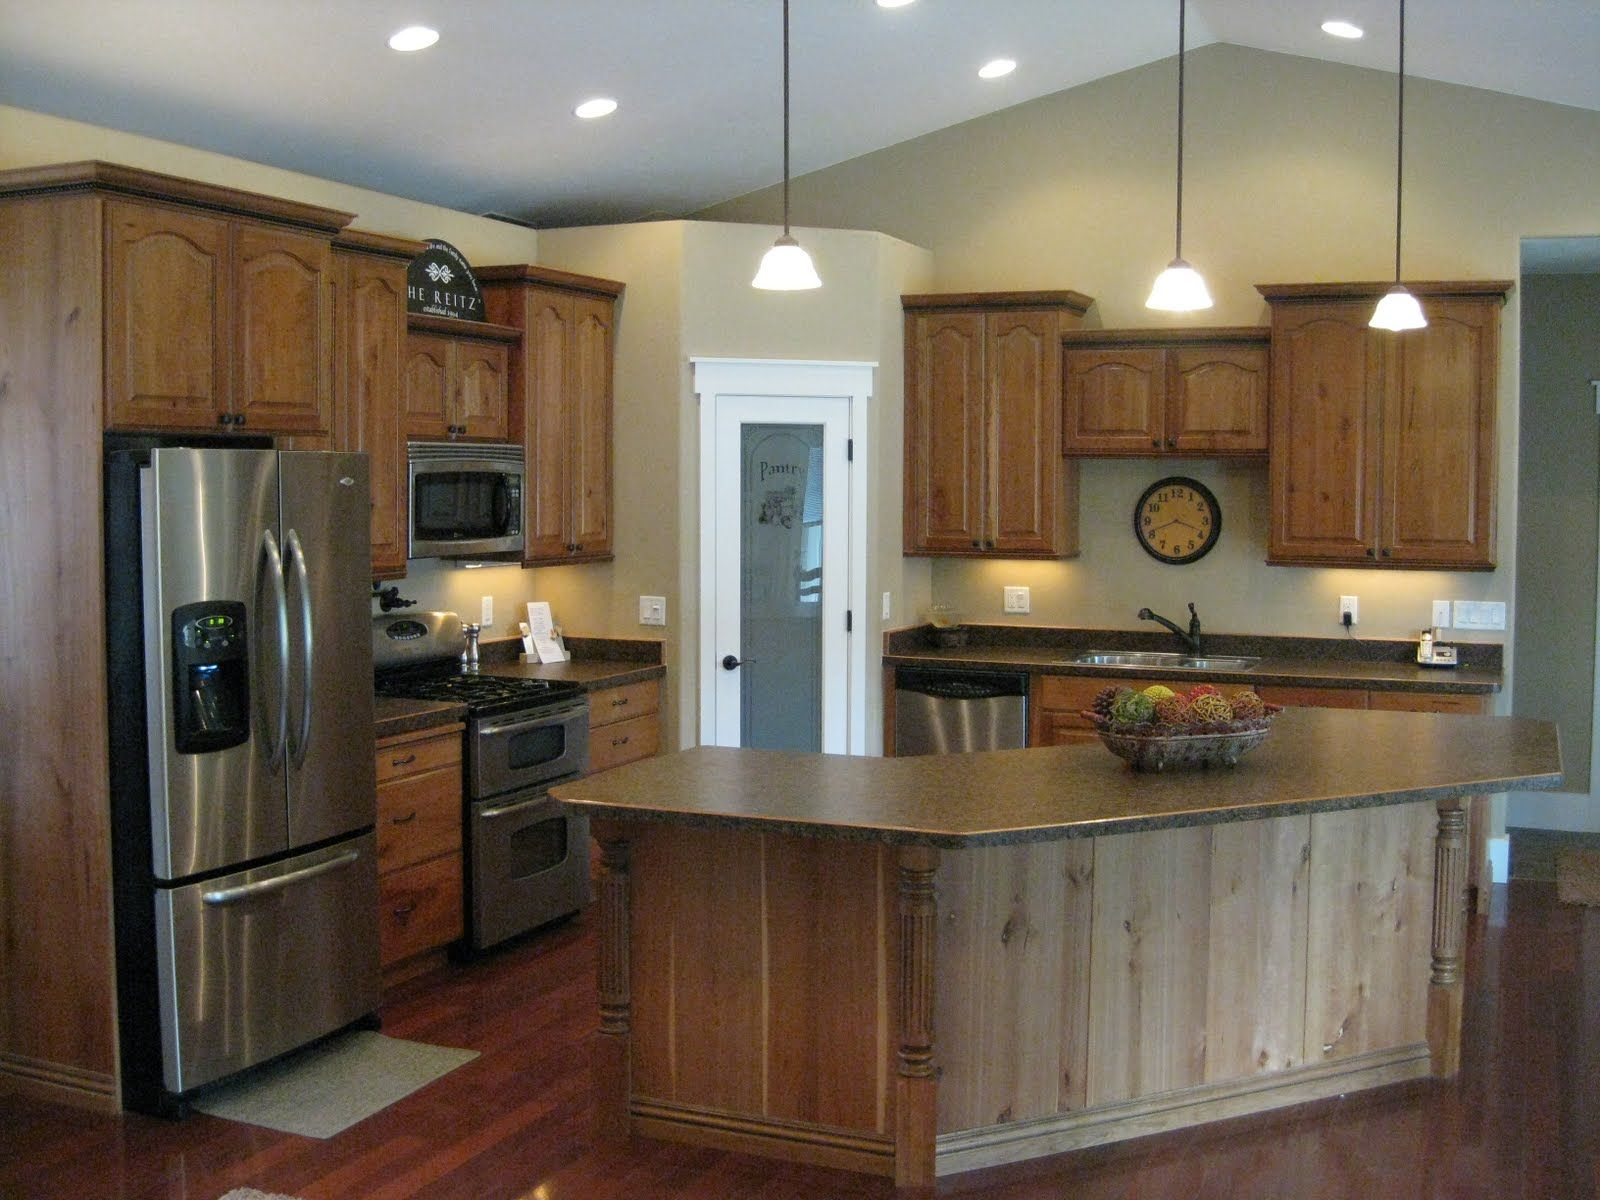 Black Moulding Cherry Cabinets With Mocha Glaze And Black Rope Trim Cherry Cabinets Home Decor Kitchen Storage